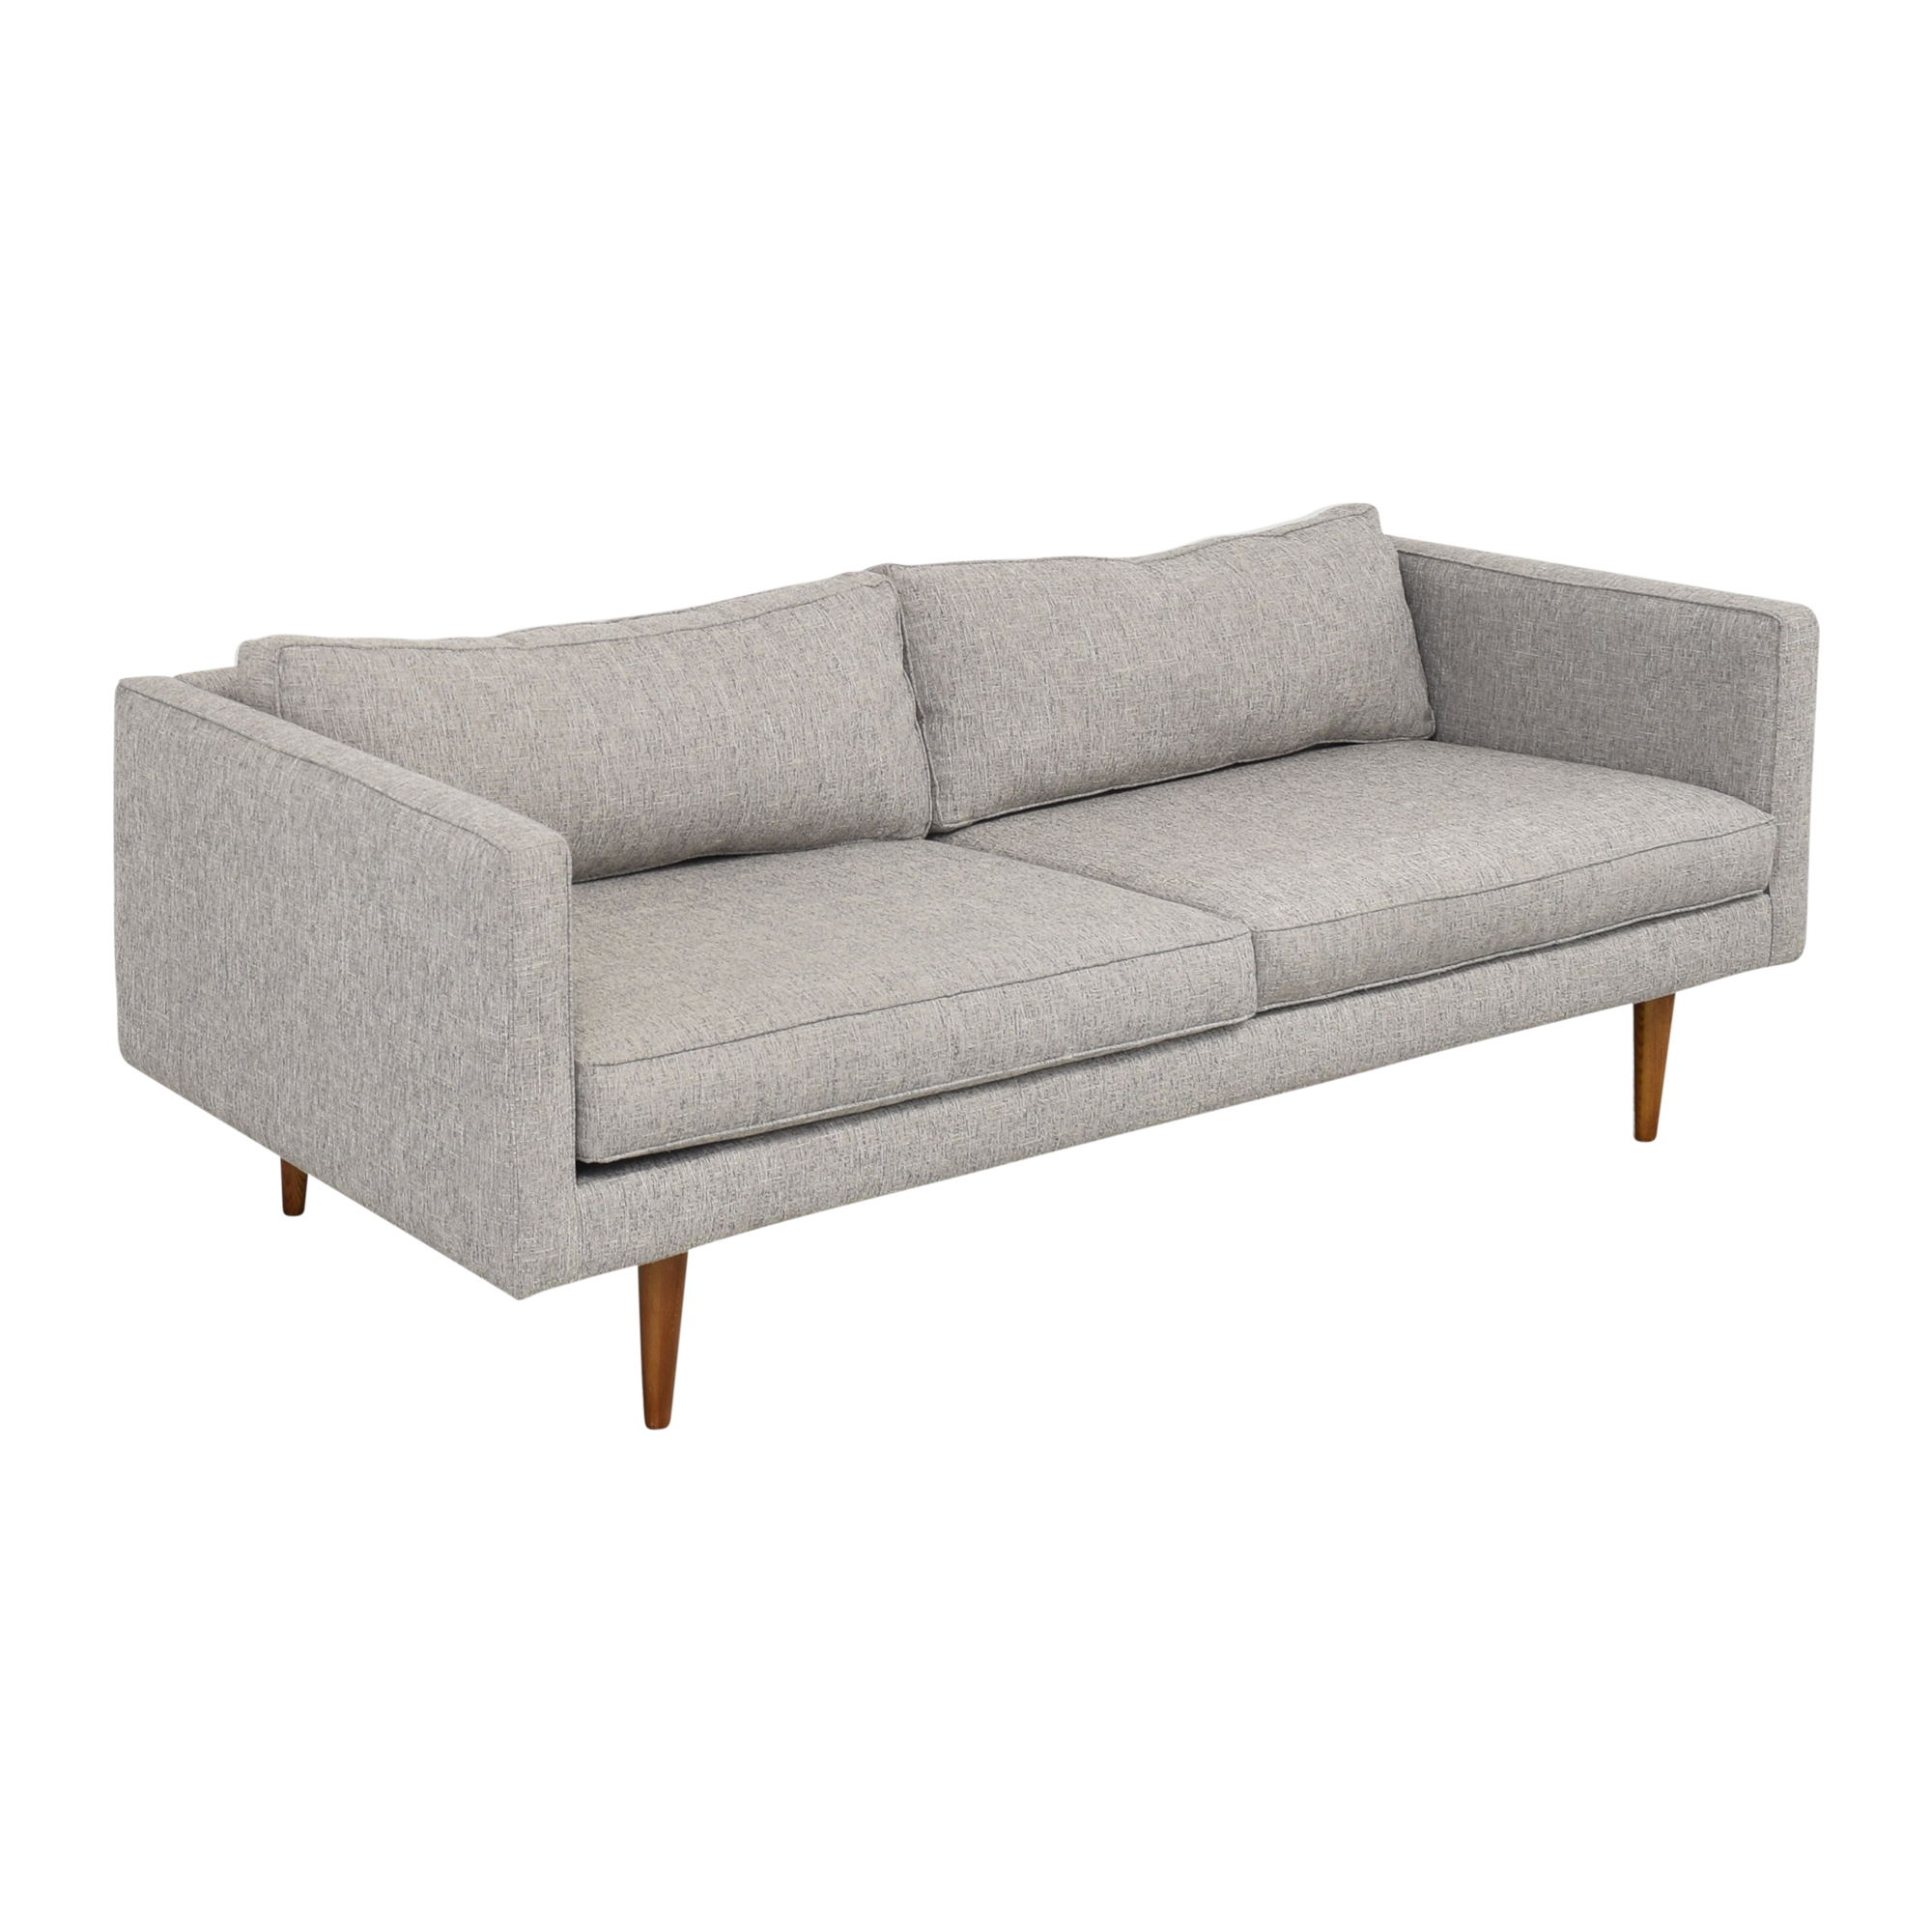 West Elm Monroe Mid-Century Sofa sale